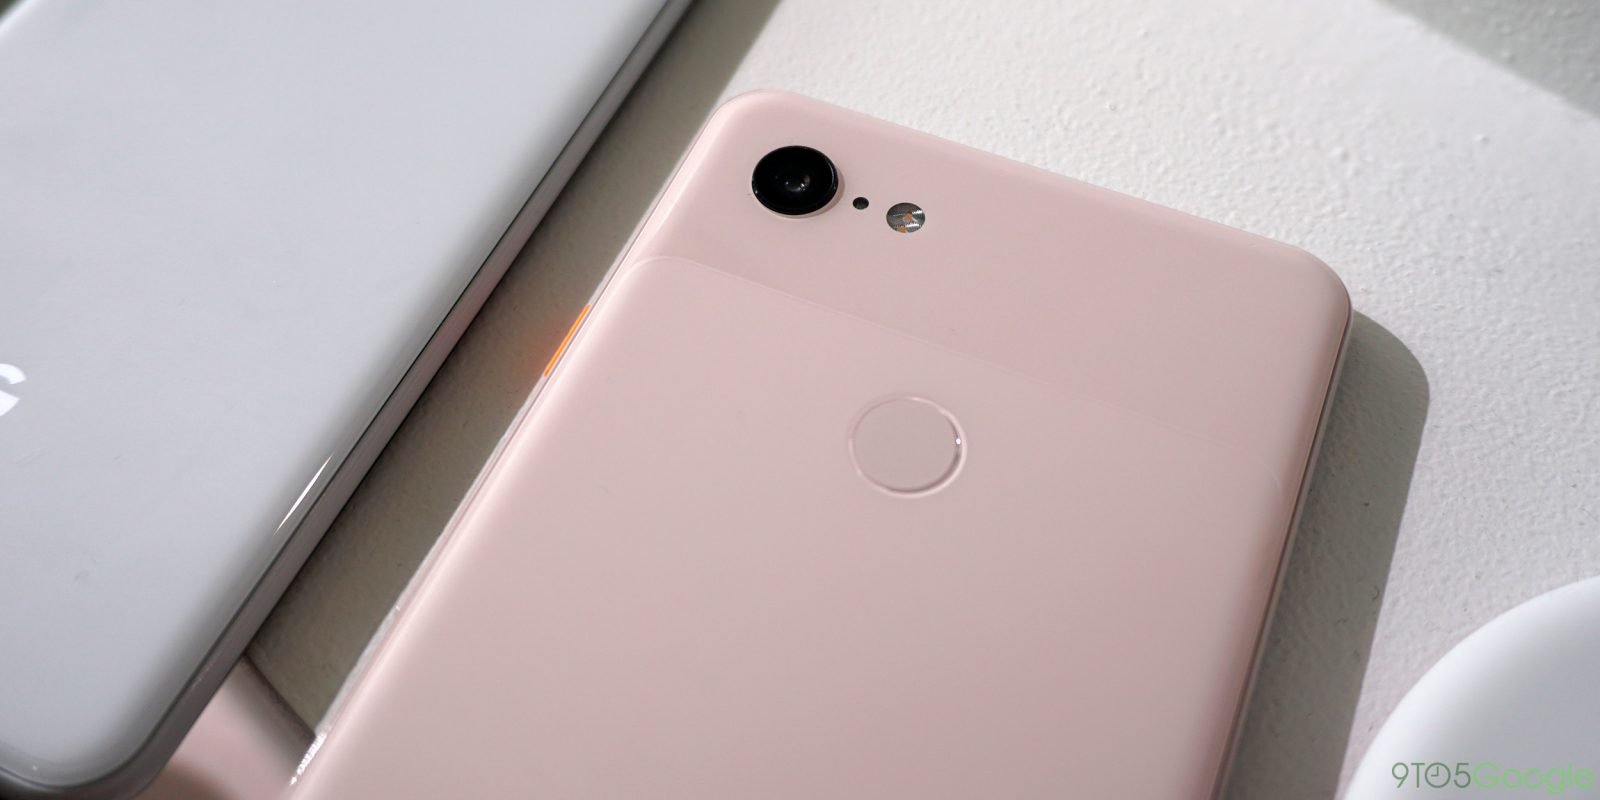 Grab Google's GSM unlocked Pixel 3XL on sale for $440 (Reg. up to $599)